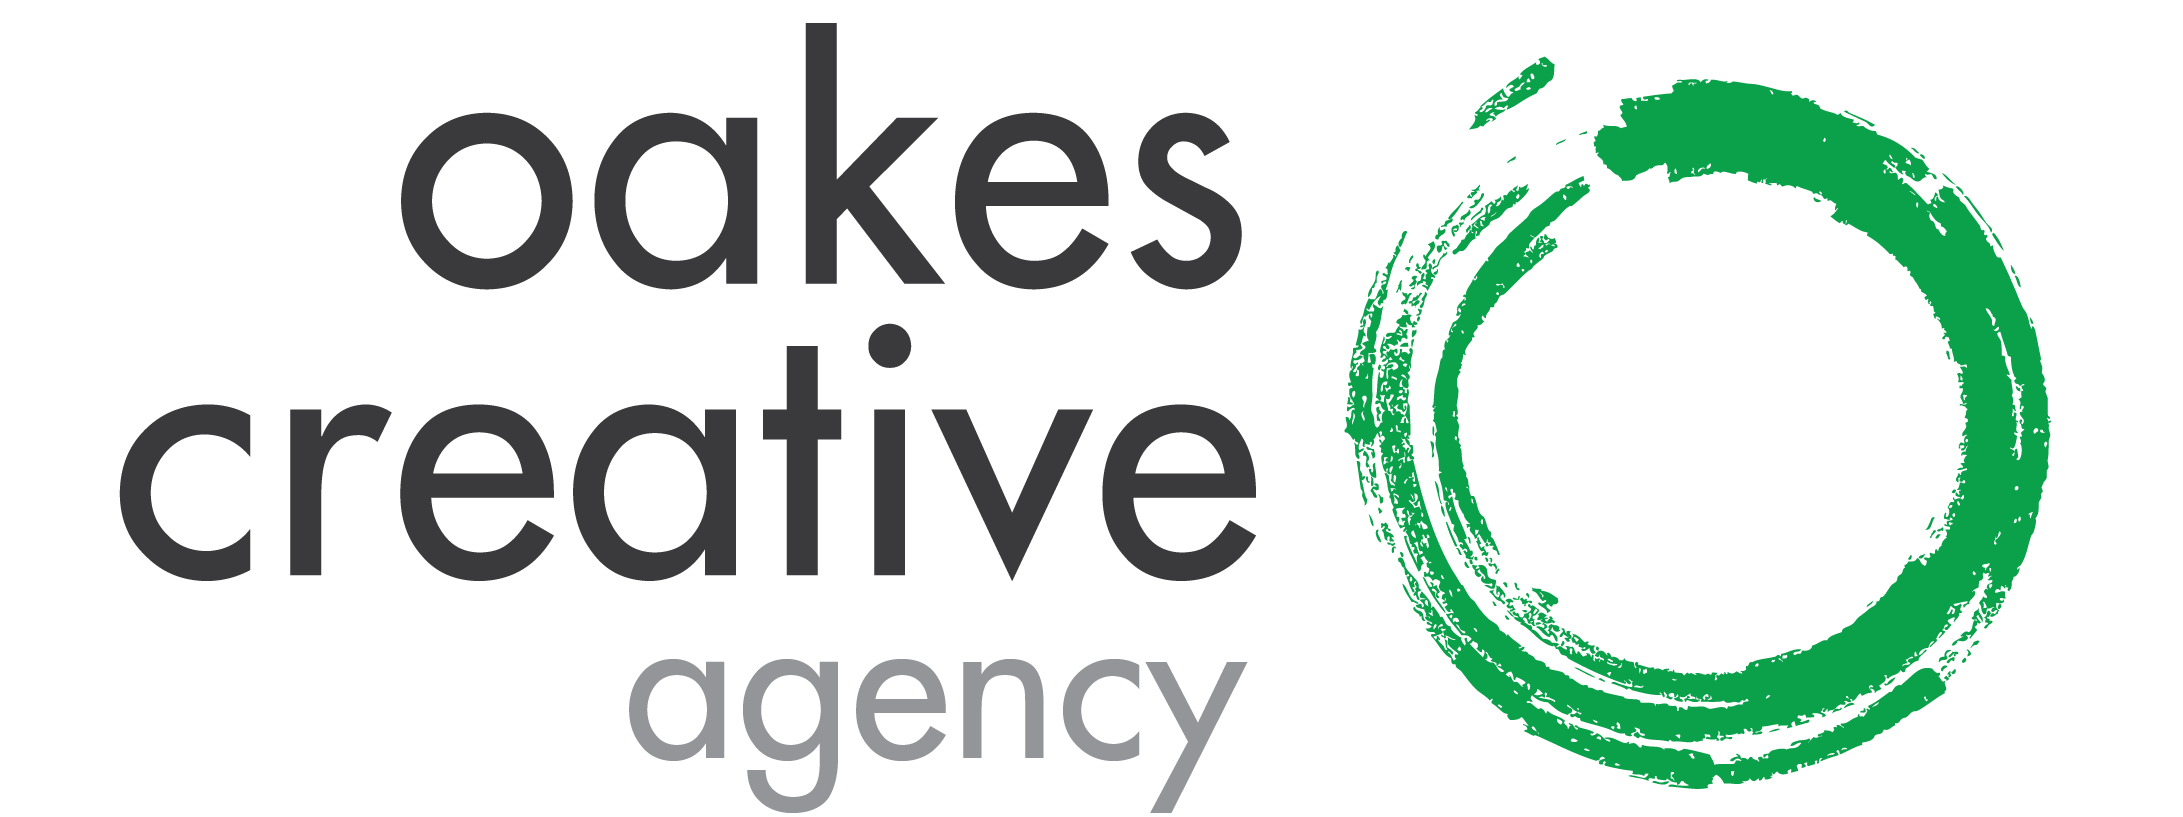 Oakes Creative Agency